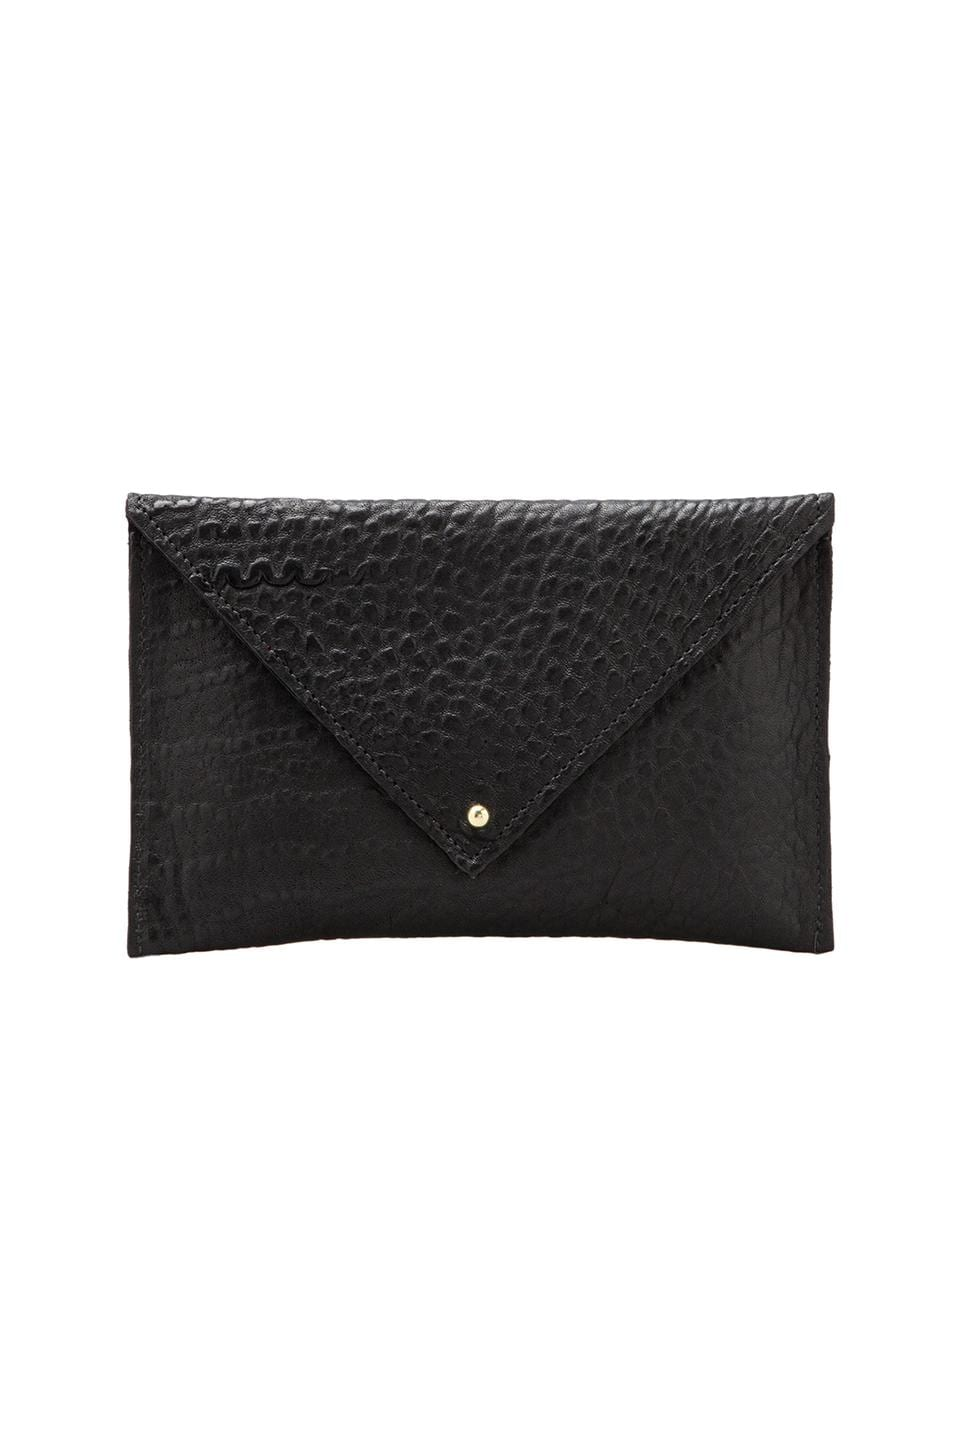 Clare V. Grande Pochette Pebble in Black